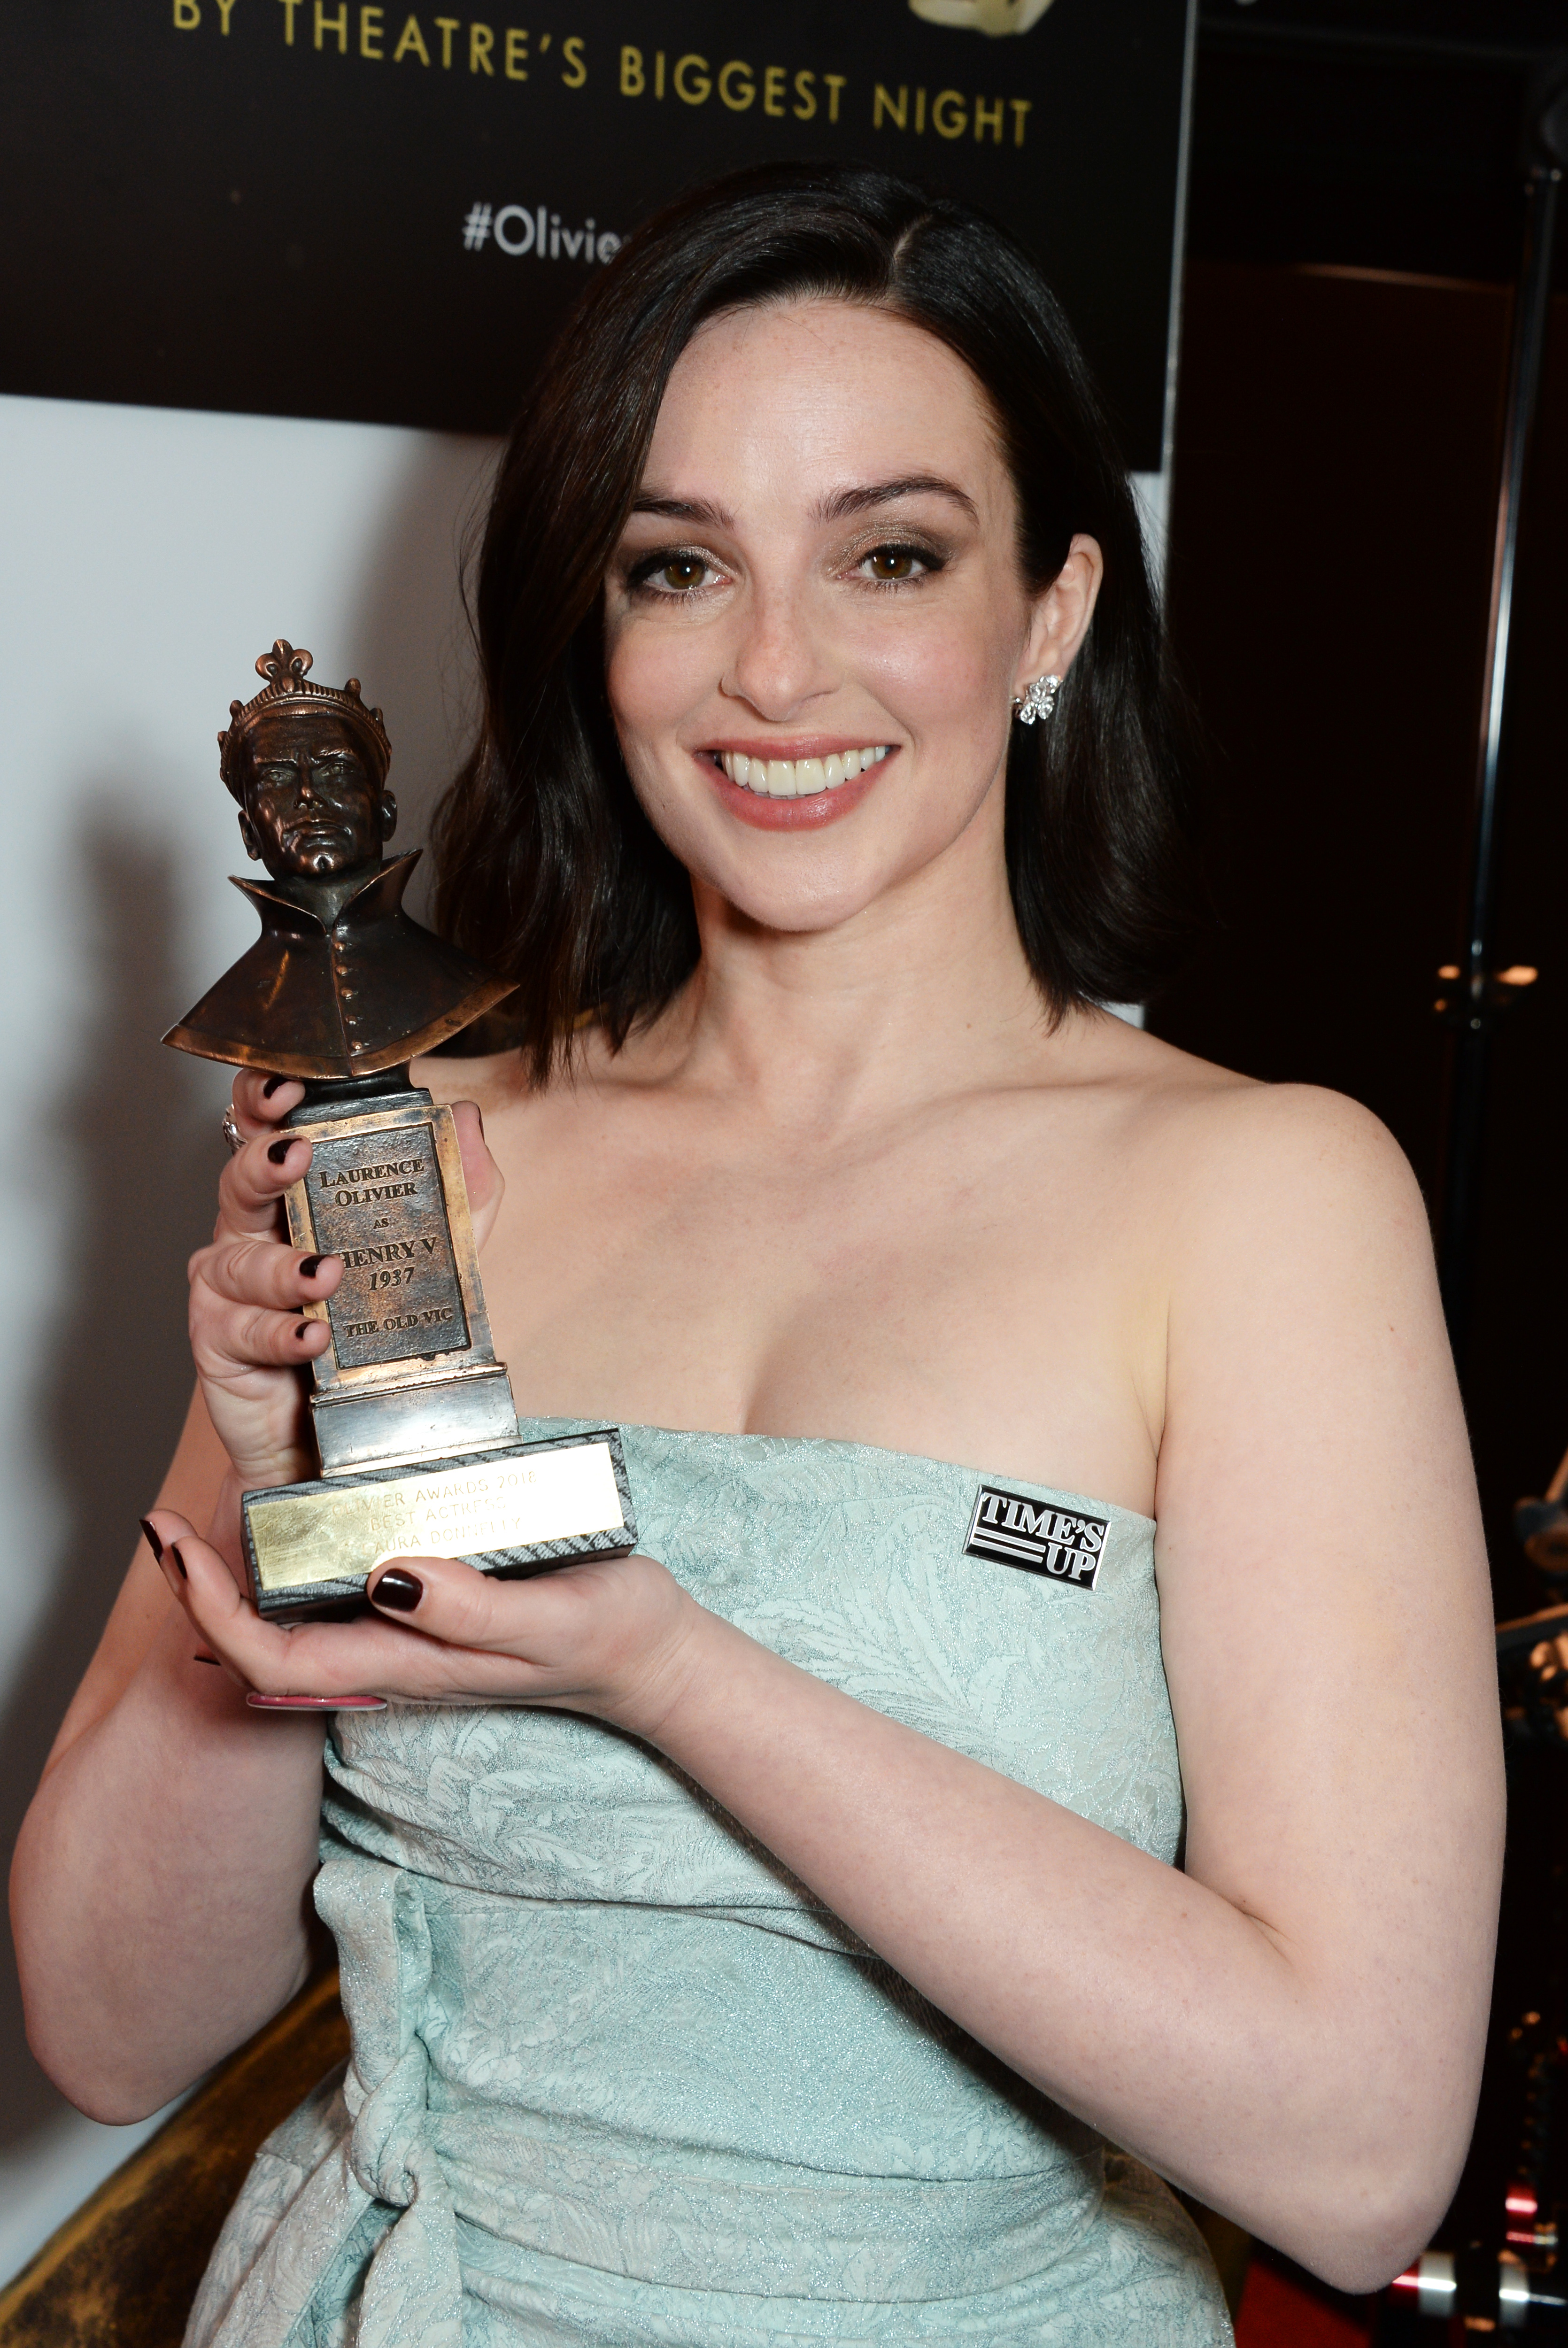 Instagram Laura Donnelly nudes (28 photos), Topless, Bikini, Instagram, cleavage 2017